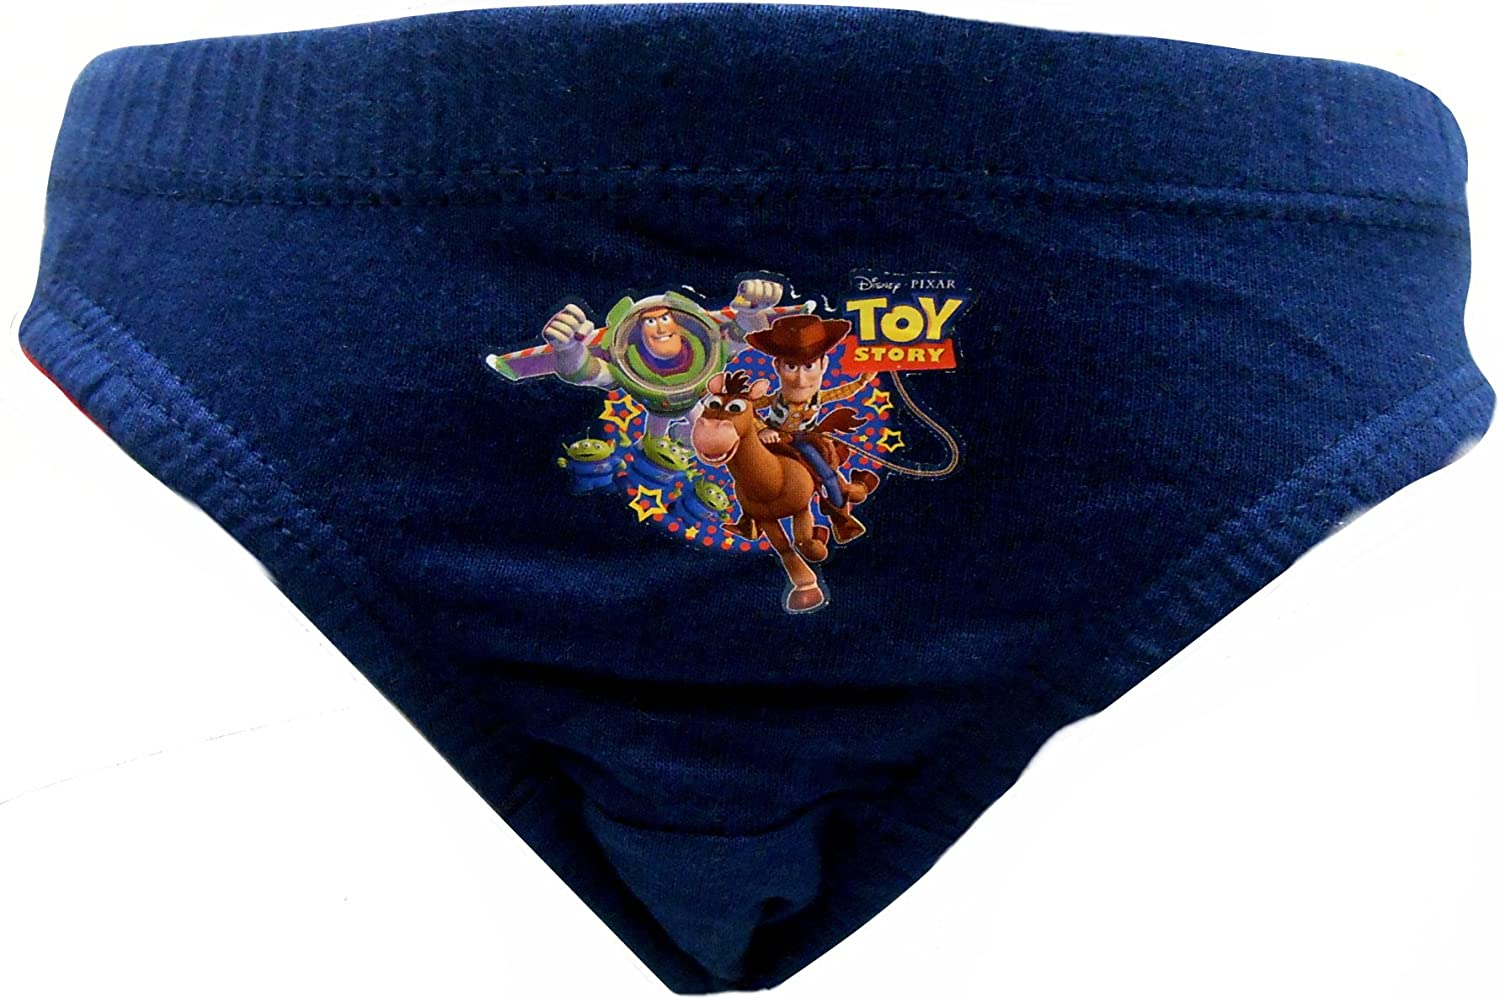 Disney Toy StoryThe Gang Boys 6 Pack Briefs Underpants